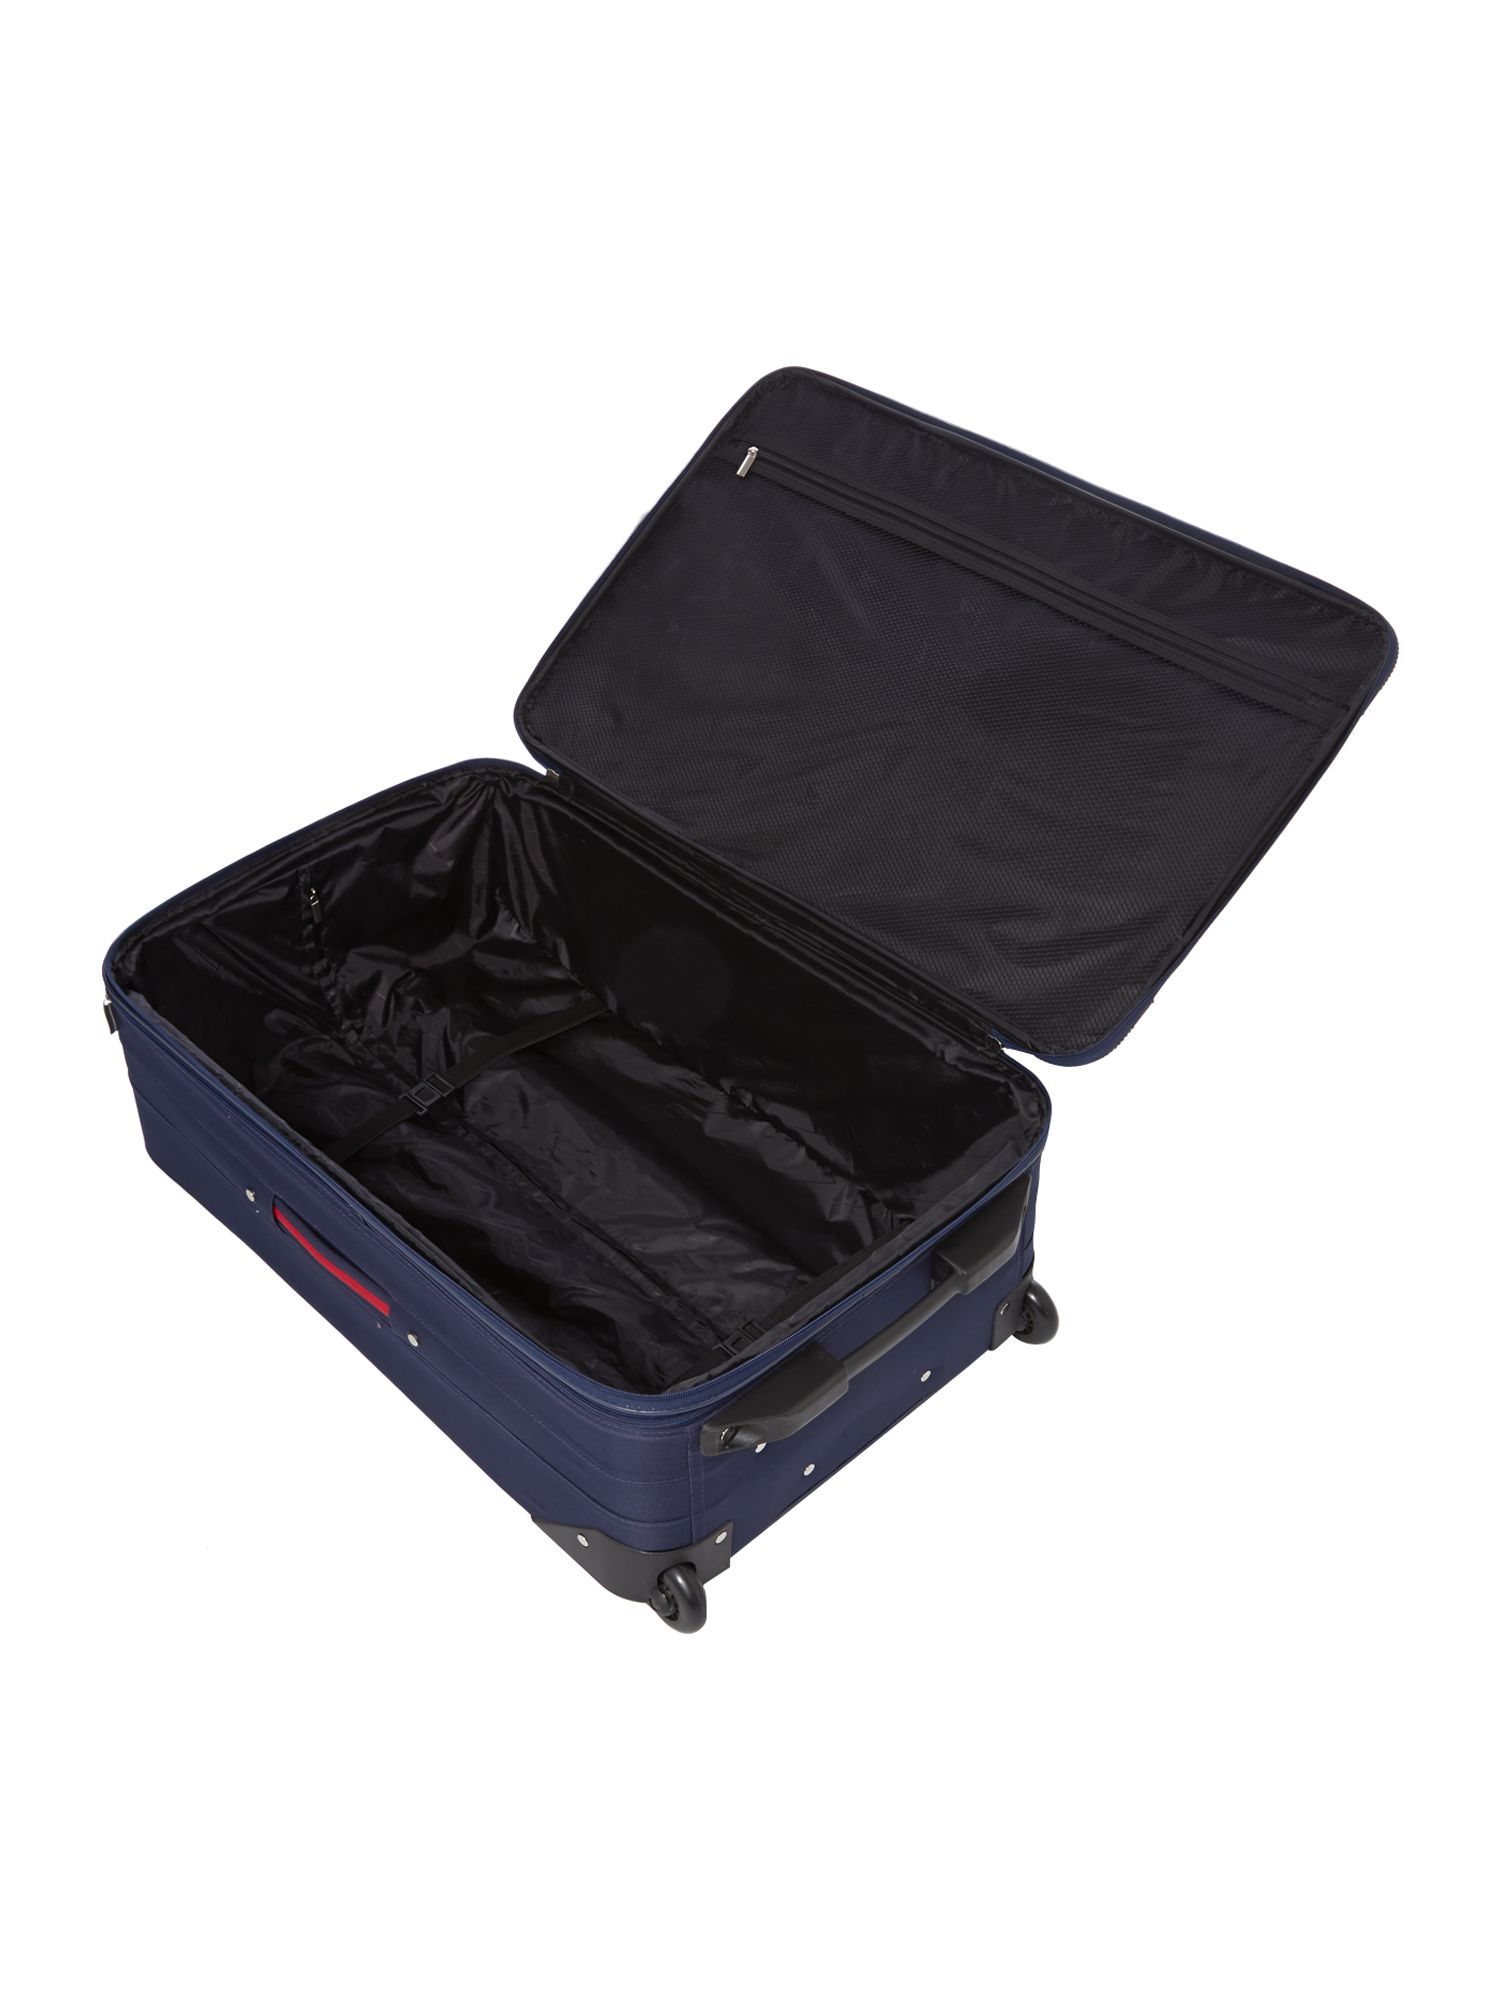 Brixham large navy suitcase